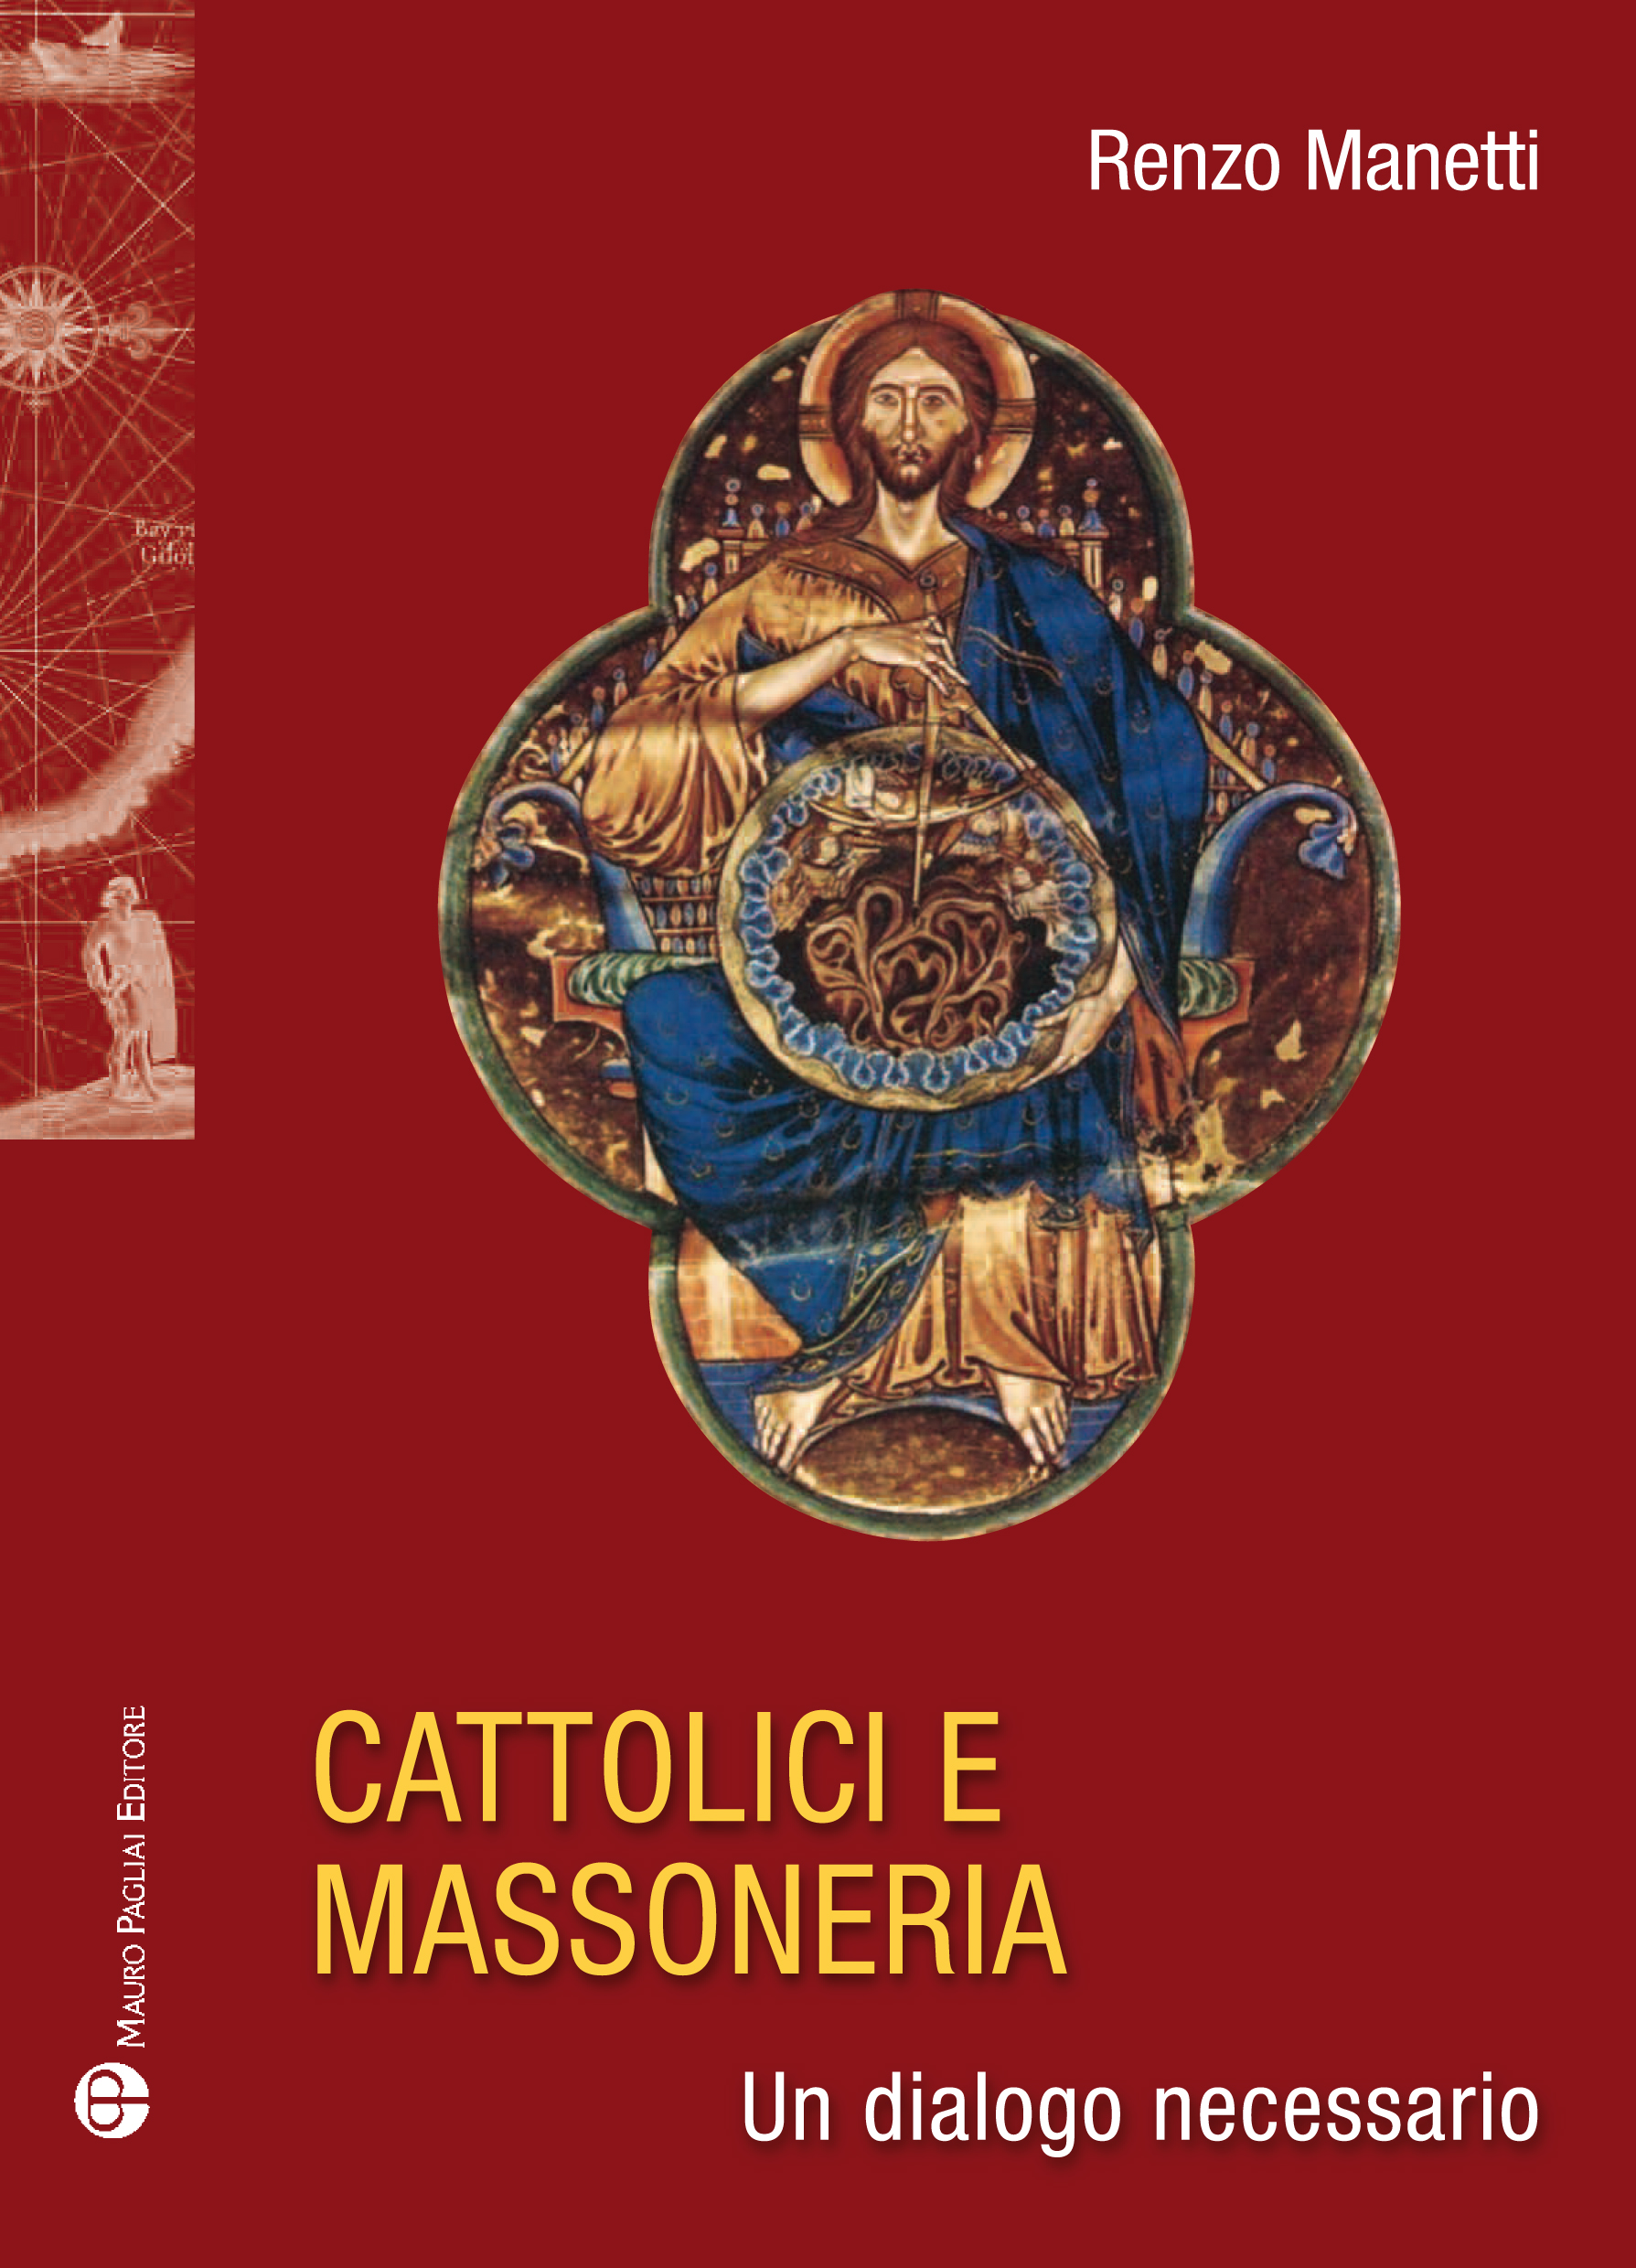 Cattolici e massoneria. Un dialogo necessario